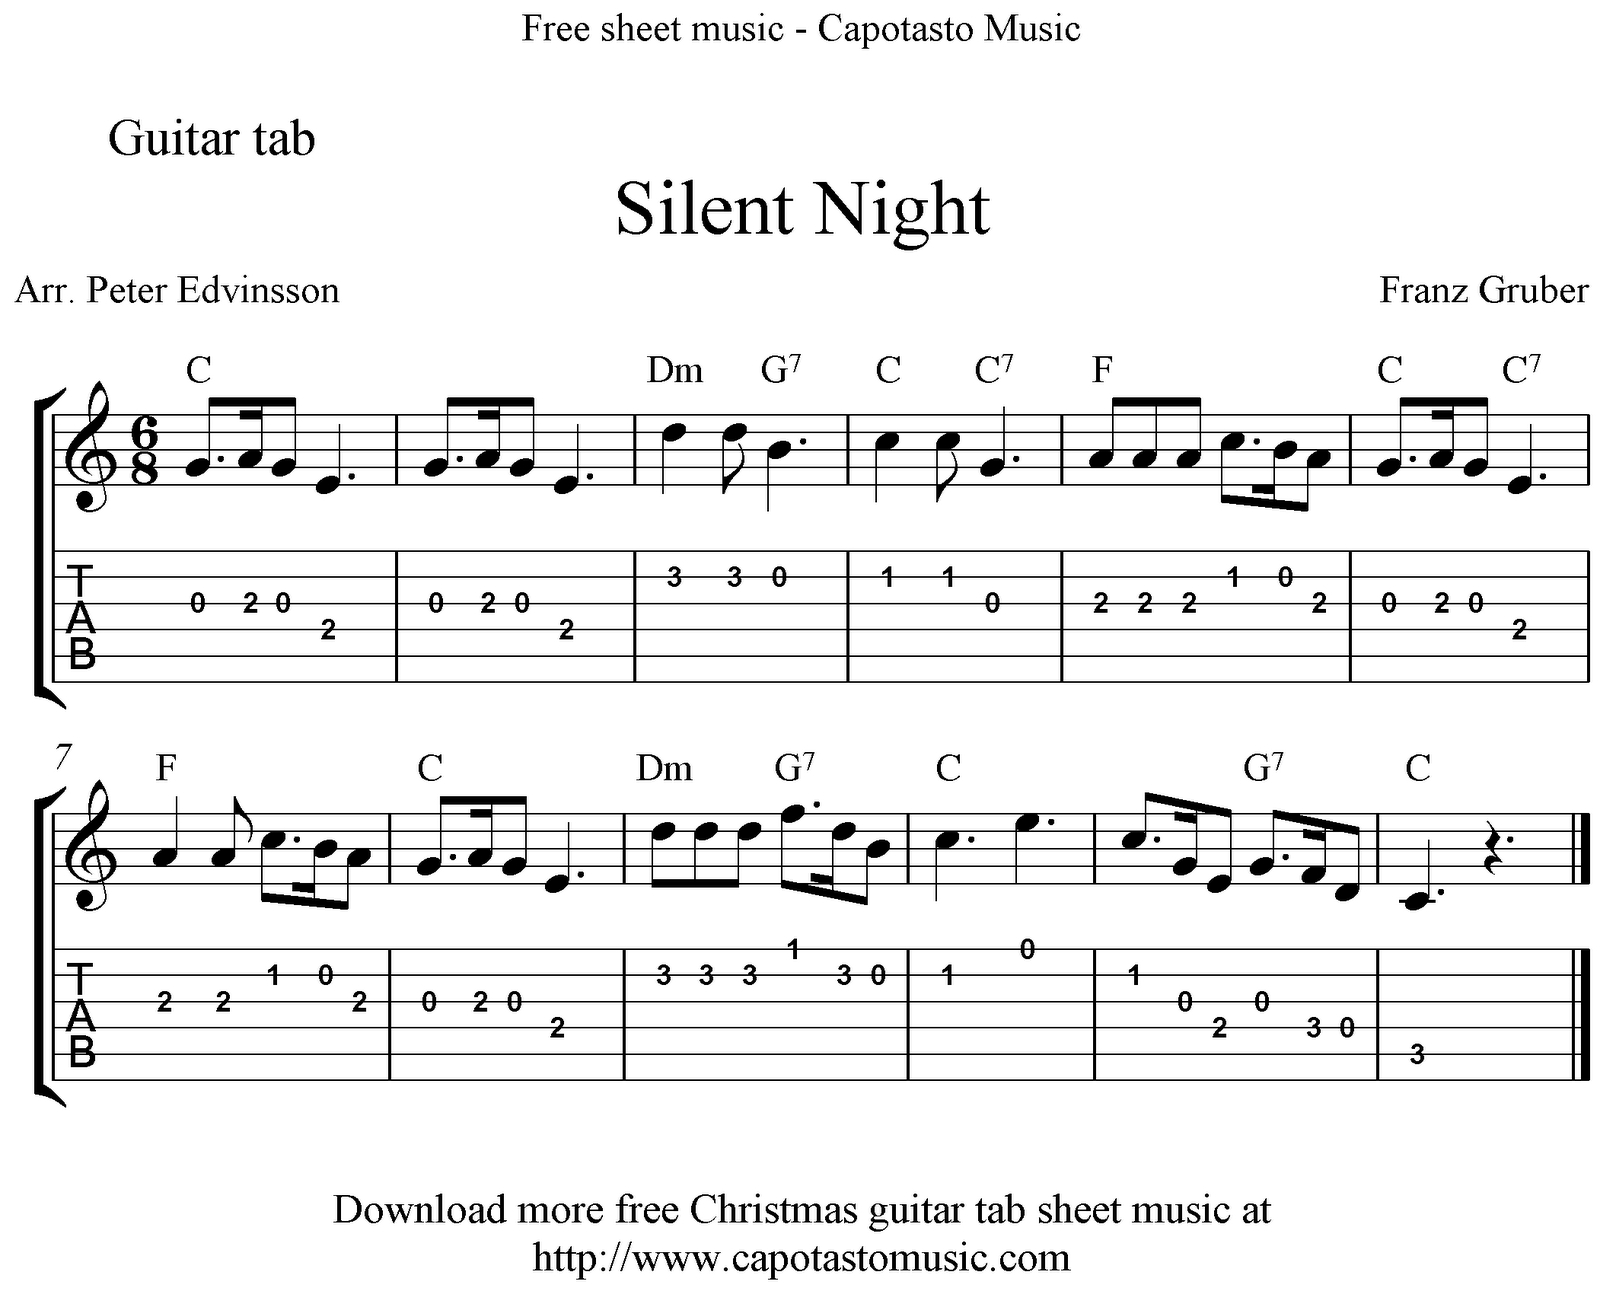 Silent Night, Easy Free Christmas Guitar Tab Sheet Music - Free Printable Guitar Music